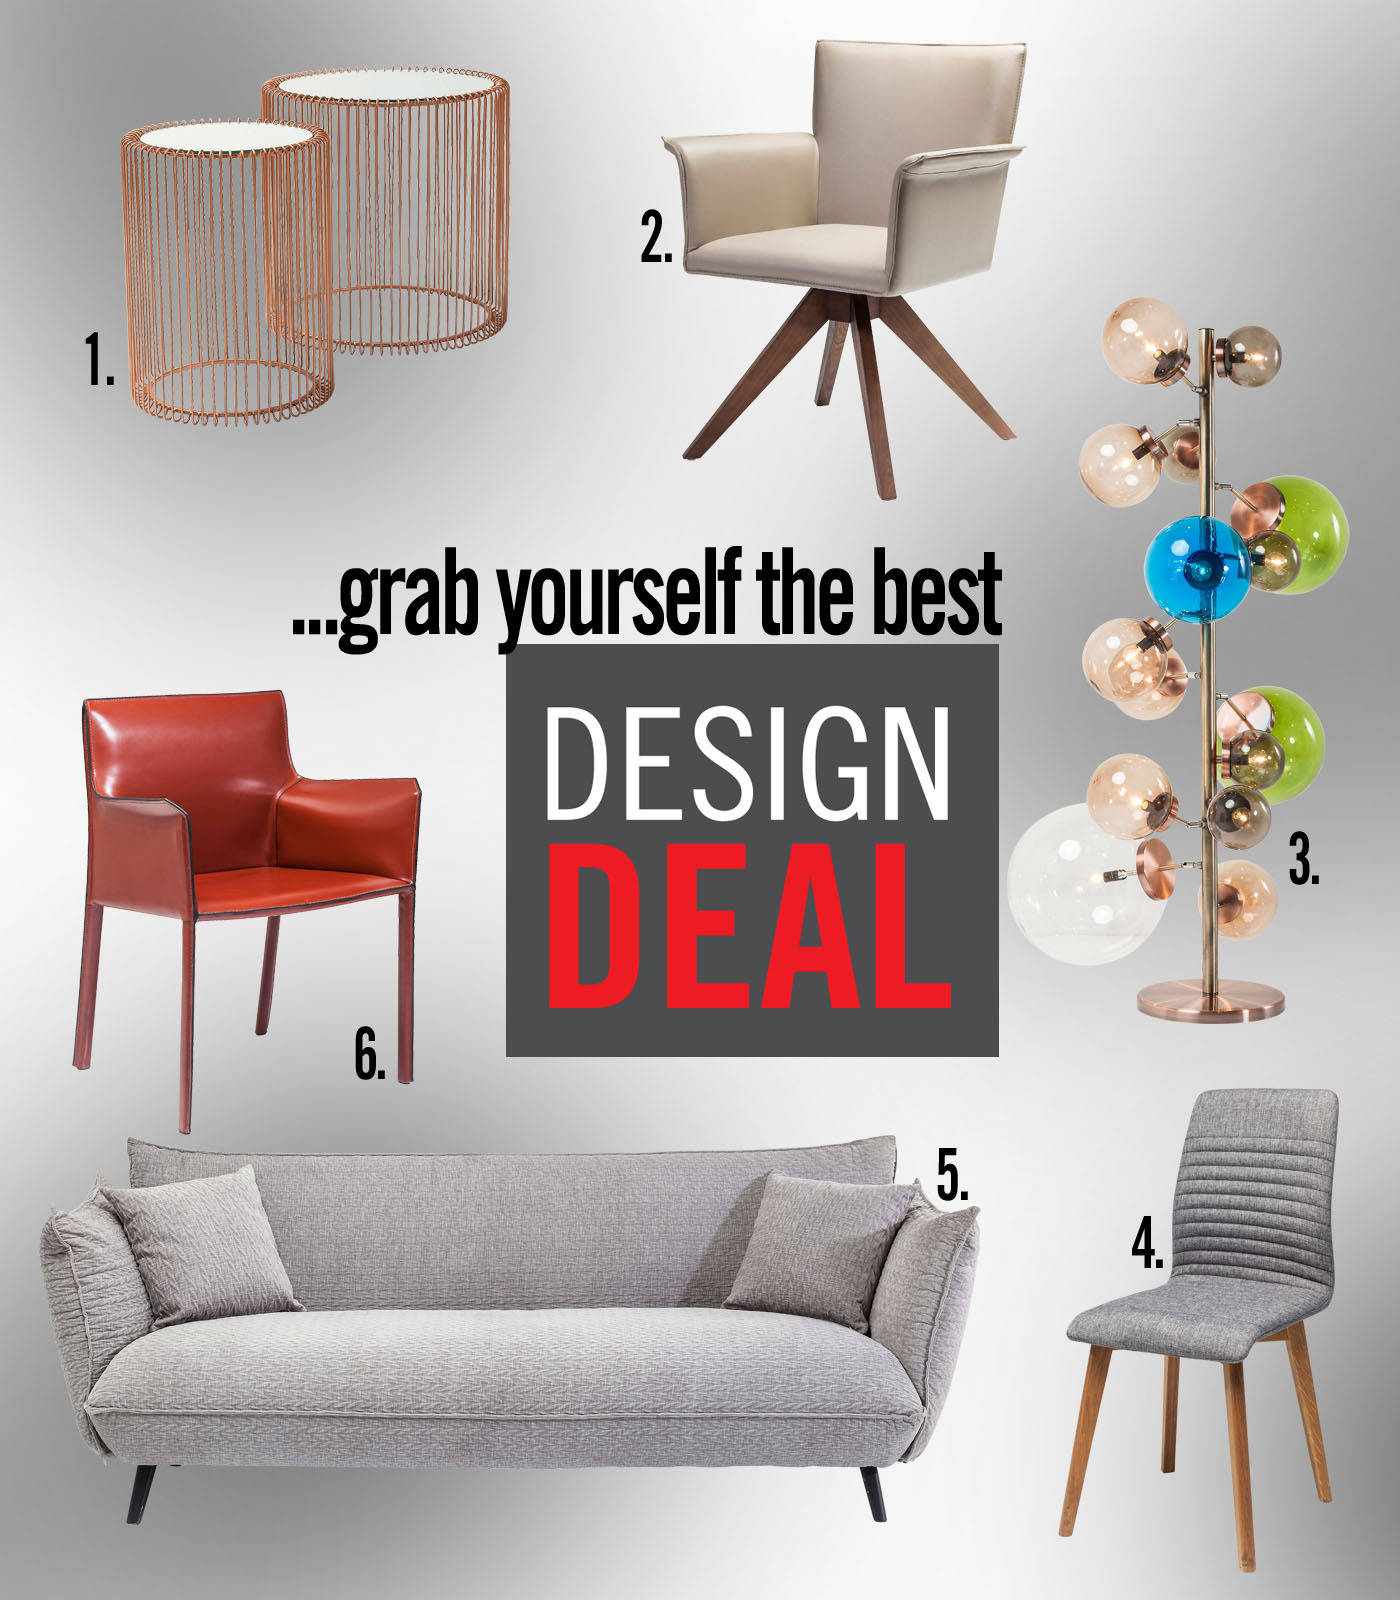 The Kare Design Deals